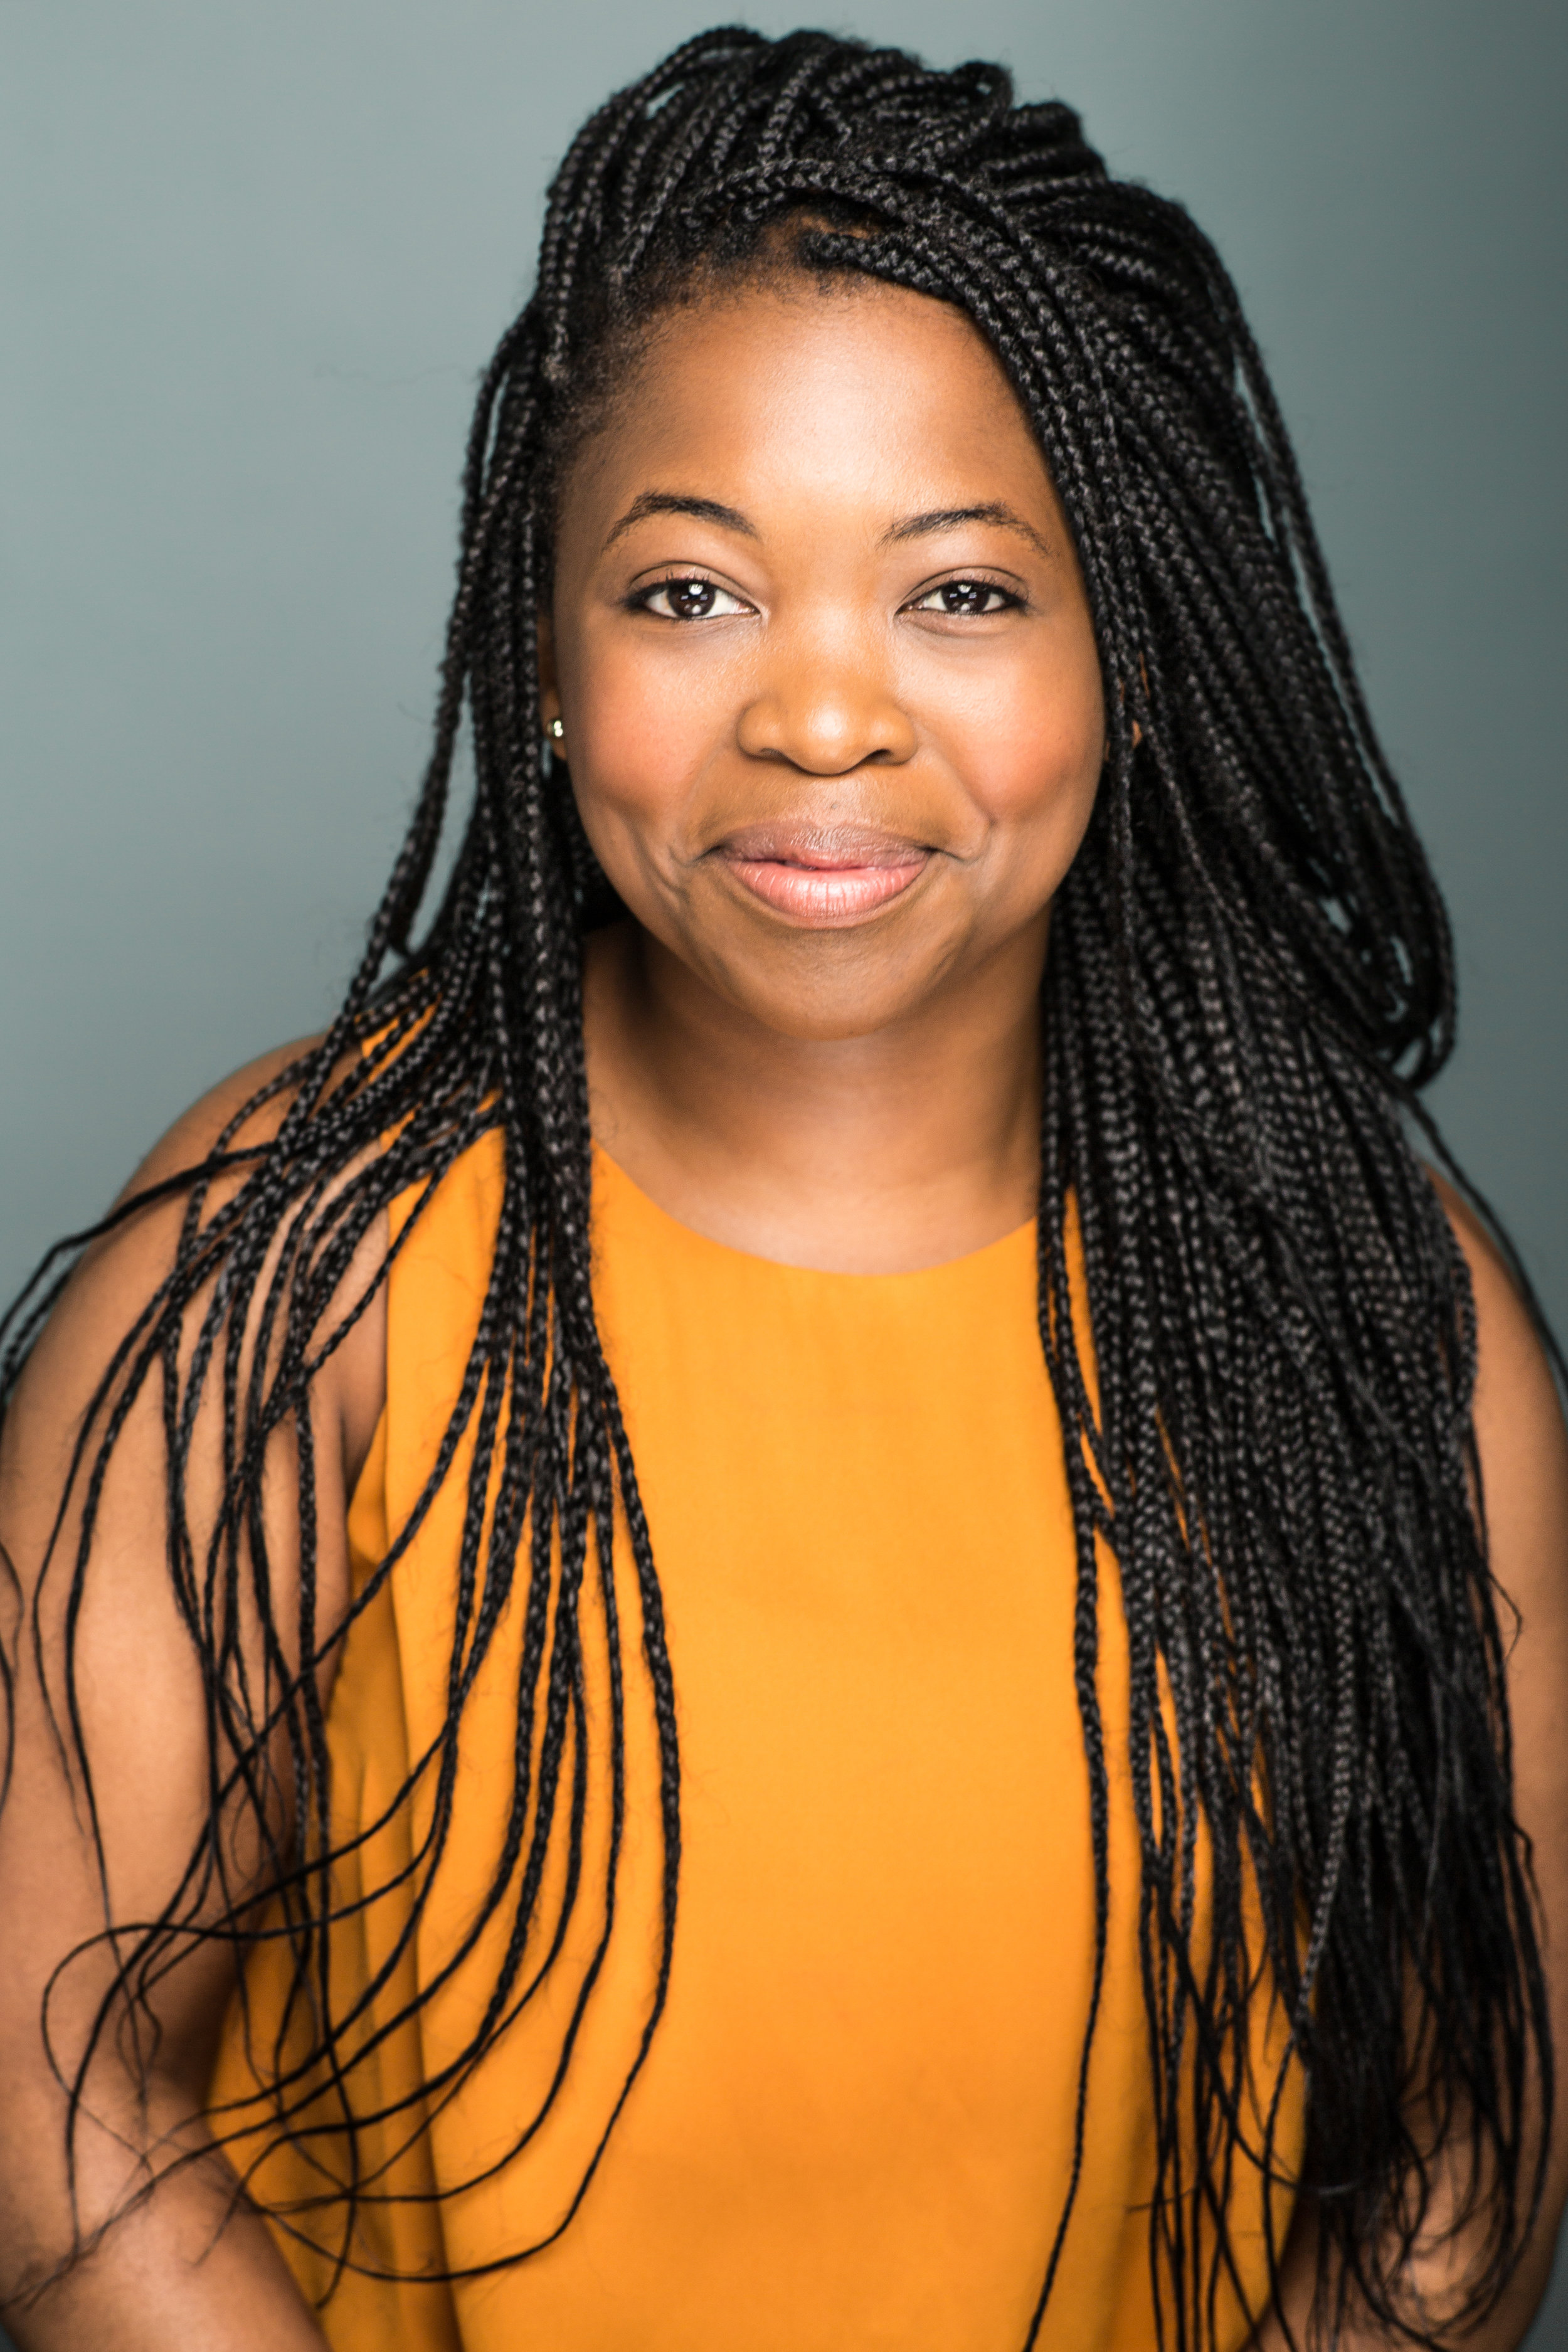 PHUMZILE SITOLE - Currently recurring on ORANGE IS THE NEW BLACK